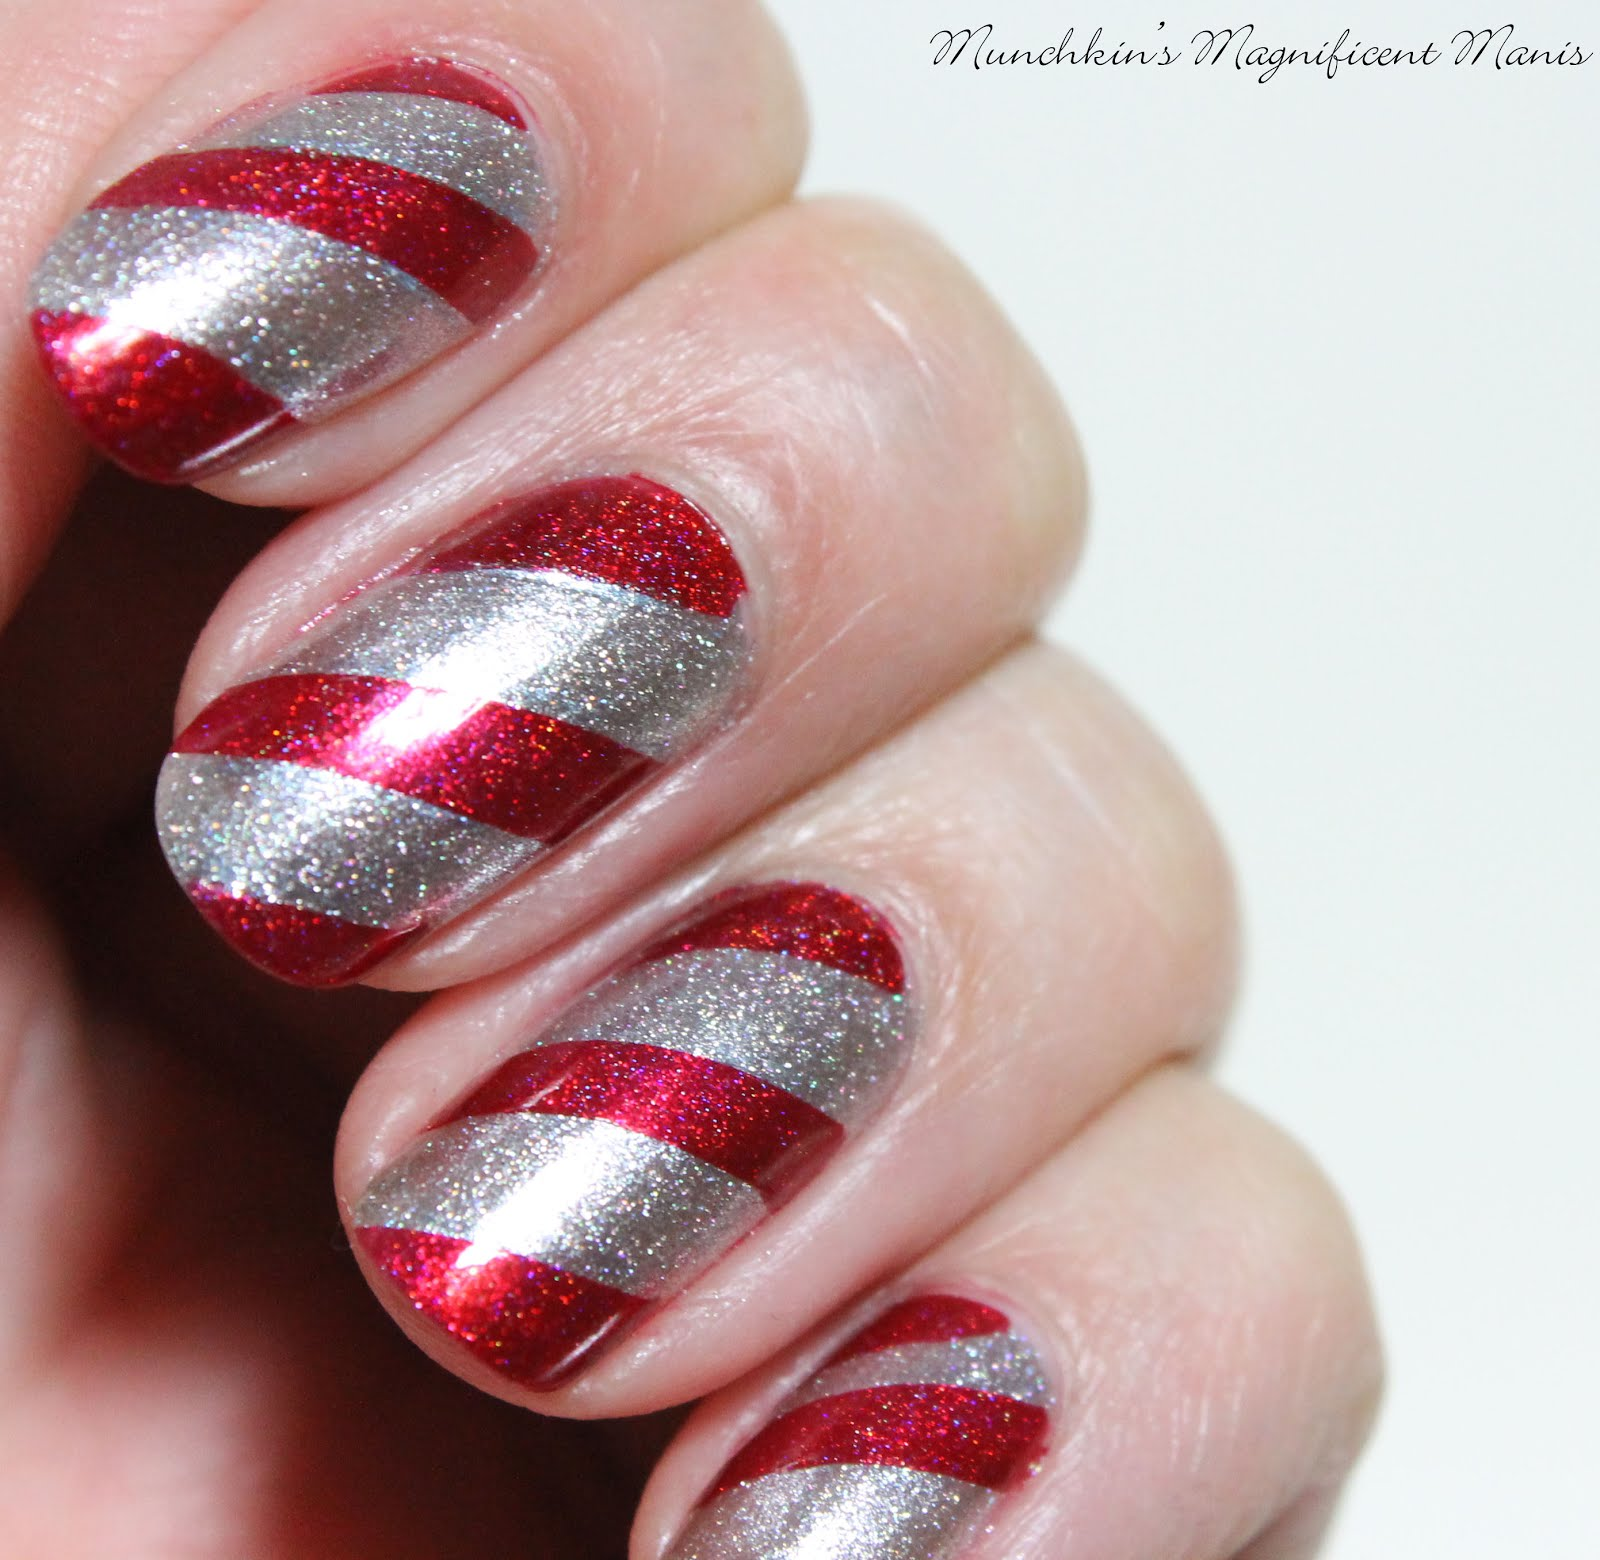 Munchkins Magnificent Manis Candy Cane Lane